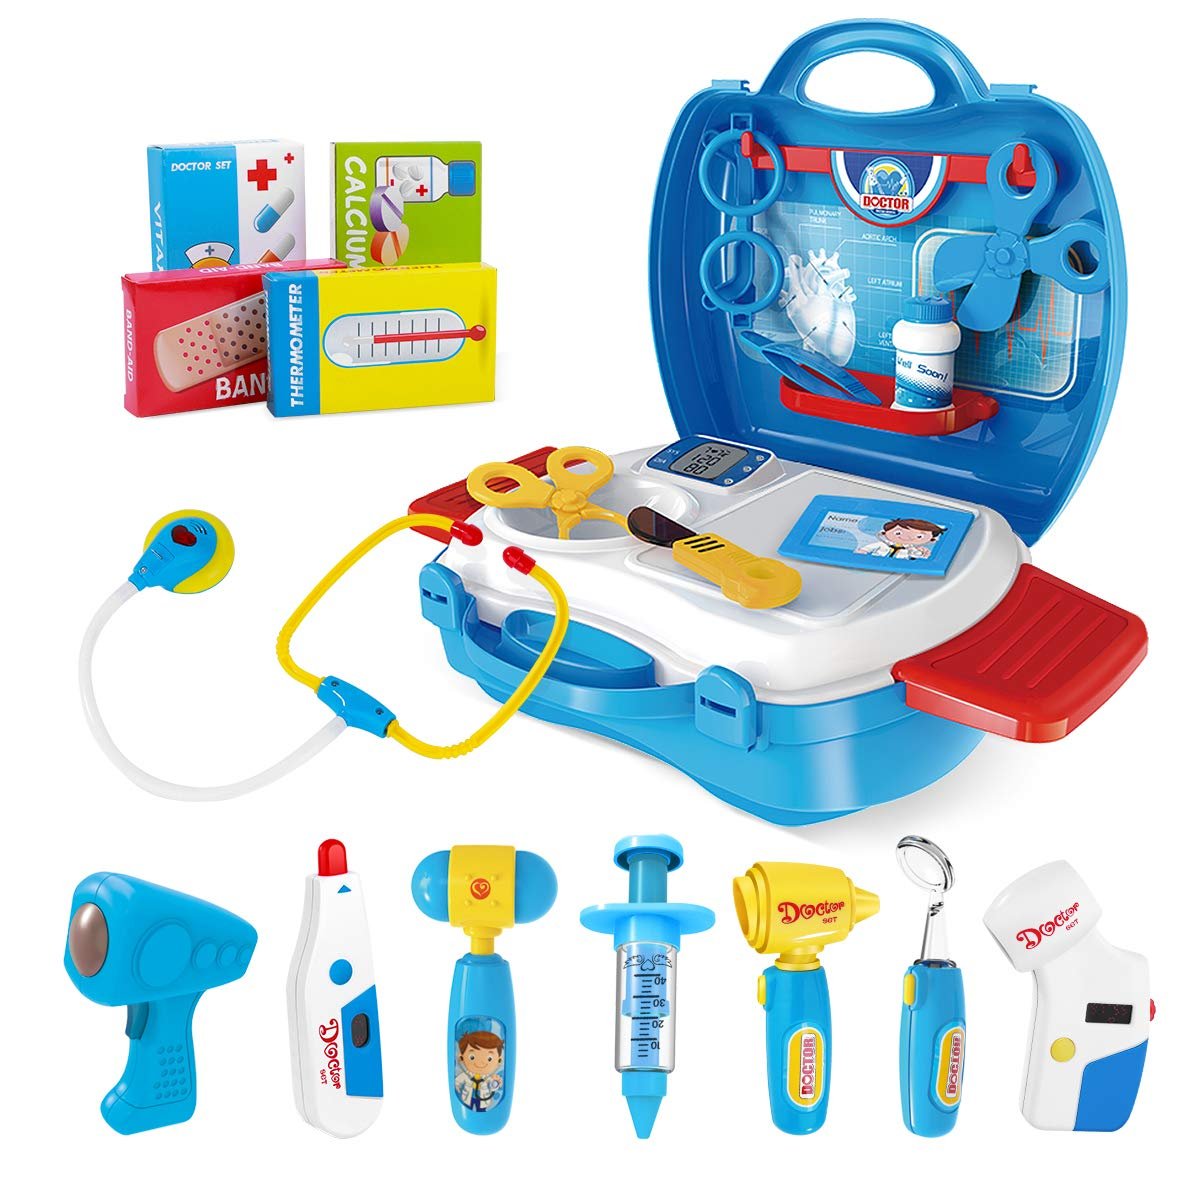 iBaseToy Doctor Kit for Kids, 27Pcs Pretend Medical Doctor Medical Playset with Electronic Stethoscope, Medical Kits Gift, Educational Doctor Toys for Toddler Boys Girls (Blue) by iBaseToy